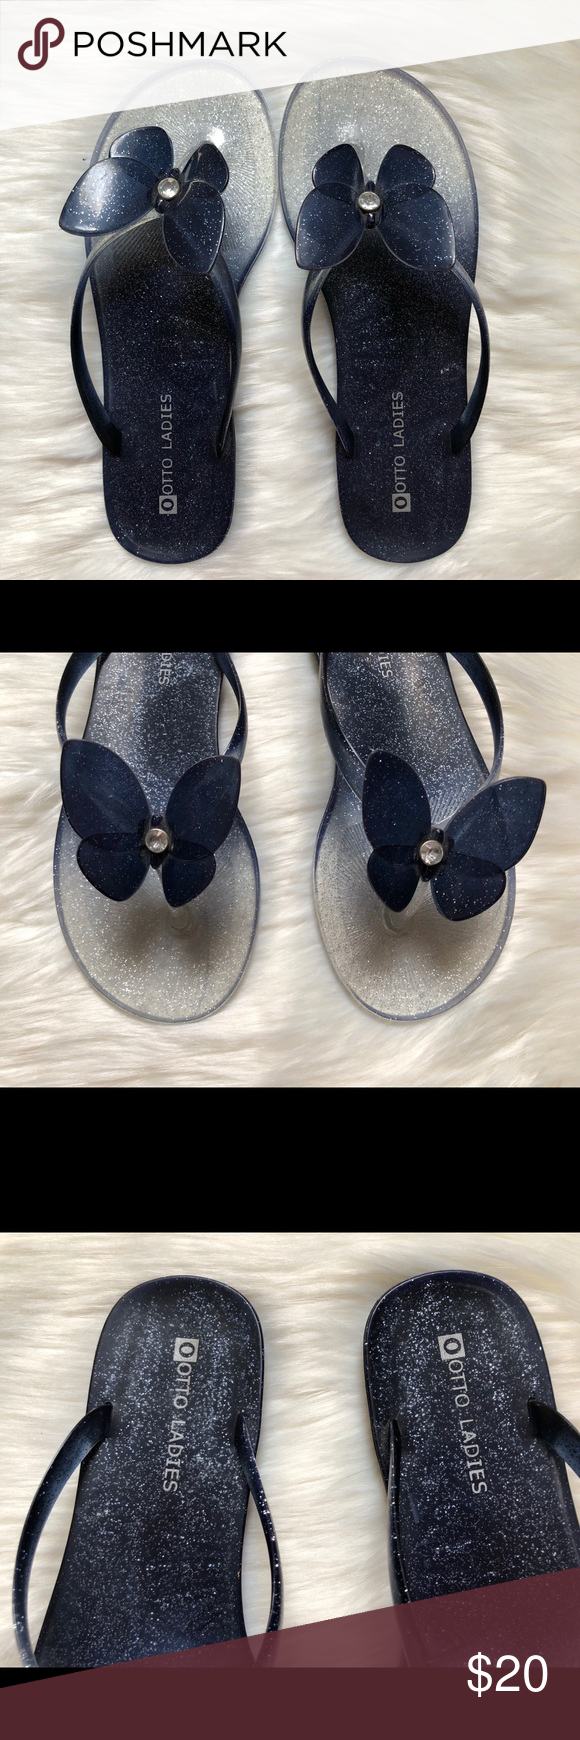 b4e63cc3cf35b Otto Ladies butterfly jelly sandals SZ 8 Preowned Otto ladies flip flop  Jelly material Adorable butterfly accessory Size euro 38 Excellent  condition ...